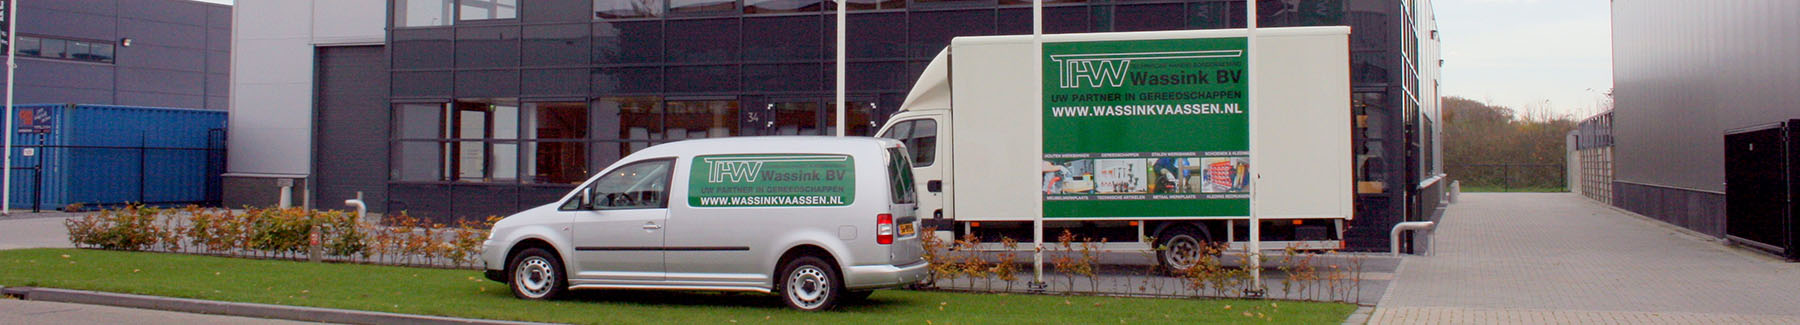 Wassink_Vaassen_Contact_4